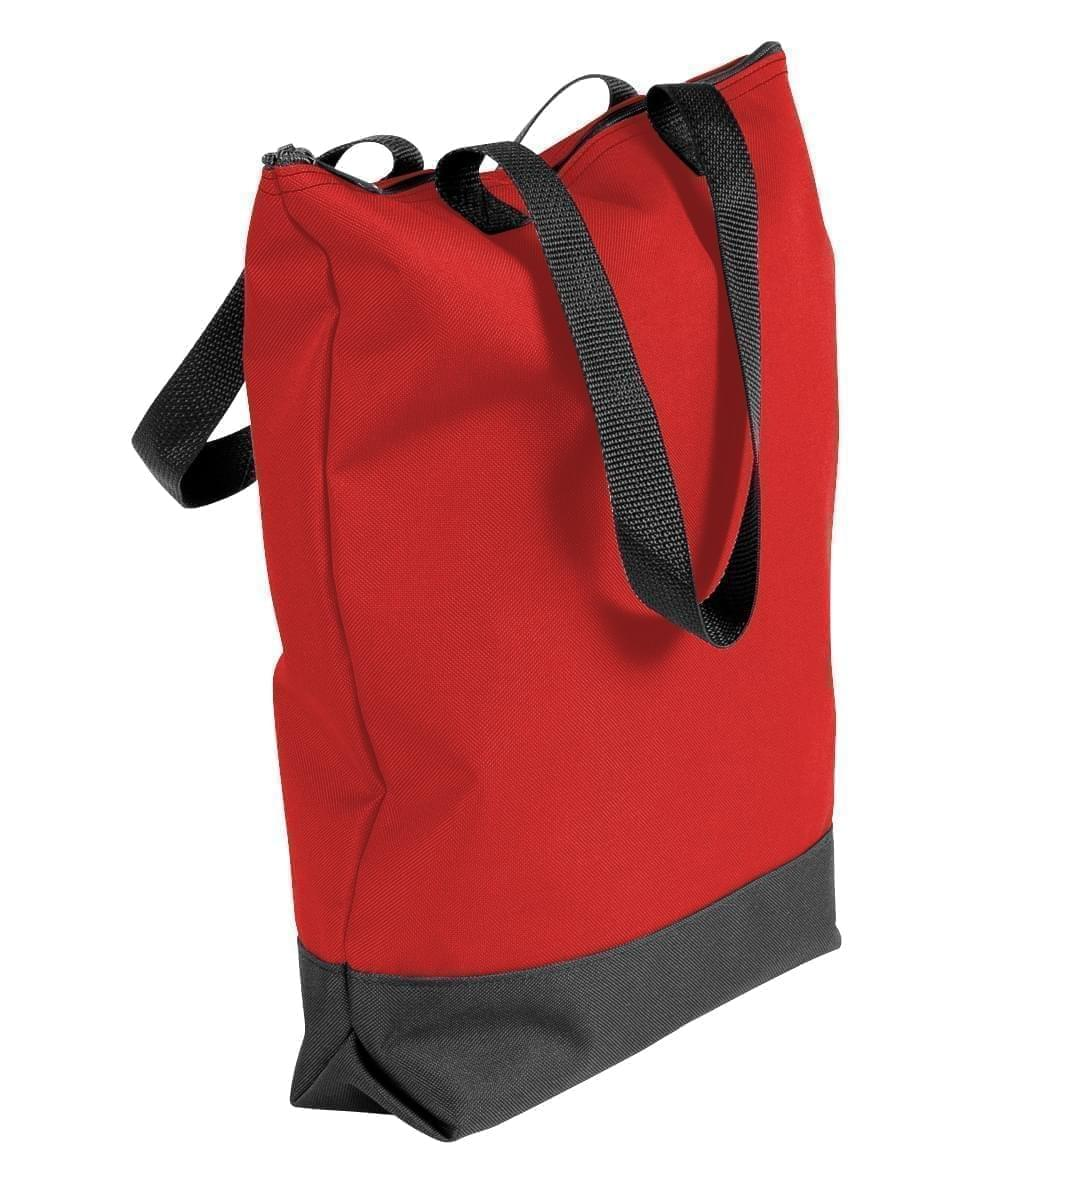 USA Made Canvas Portfolio Tote Bags, Red-Black, 1AAMX1UAER